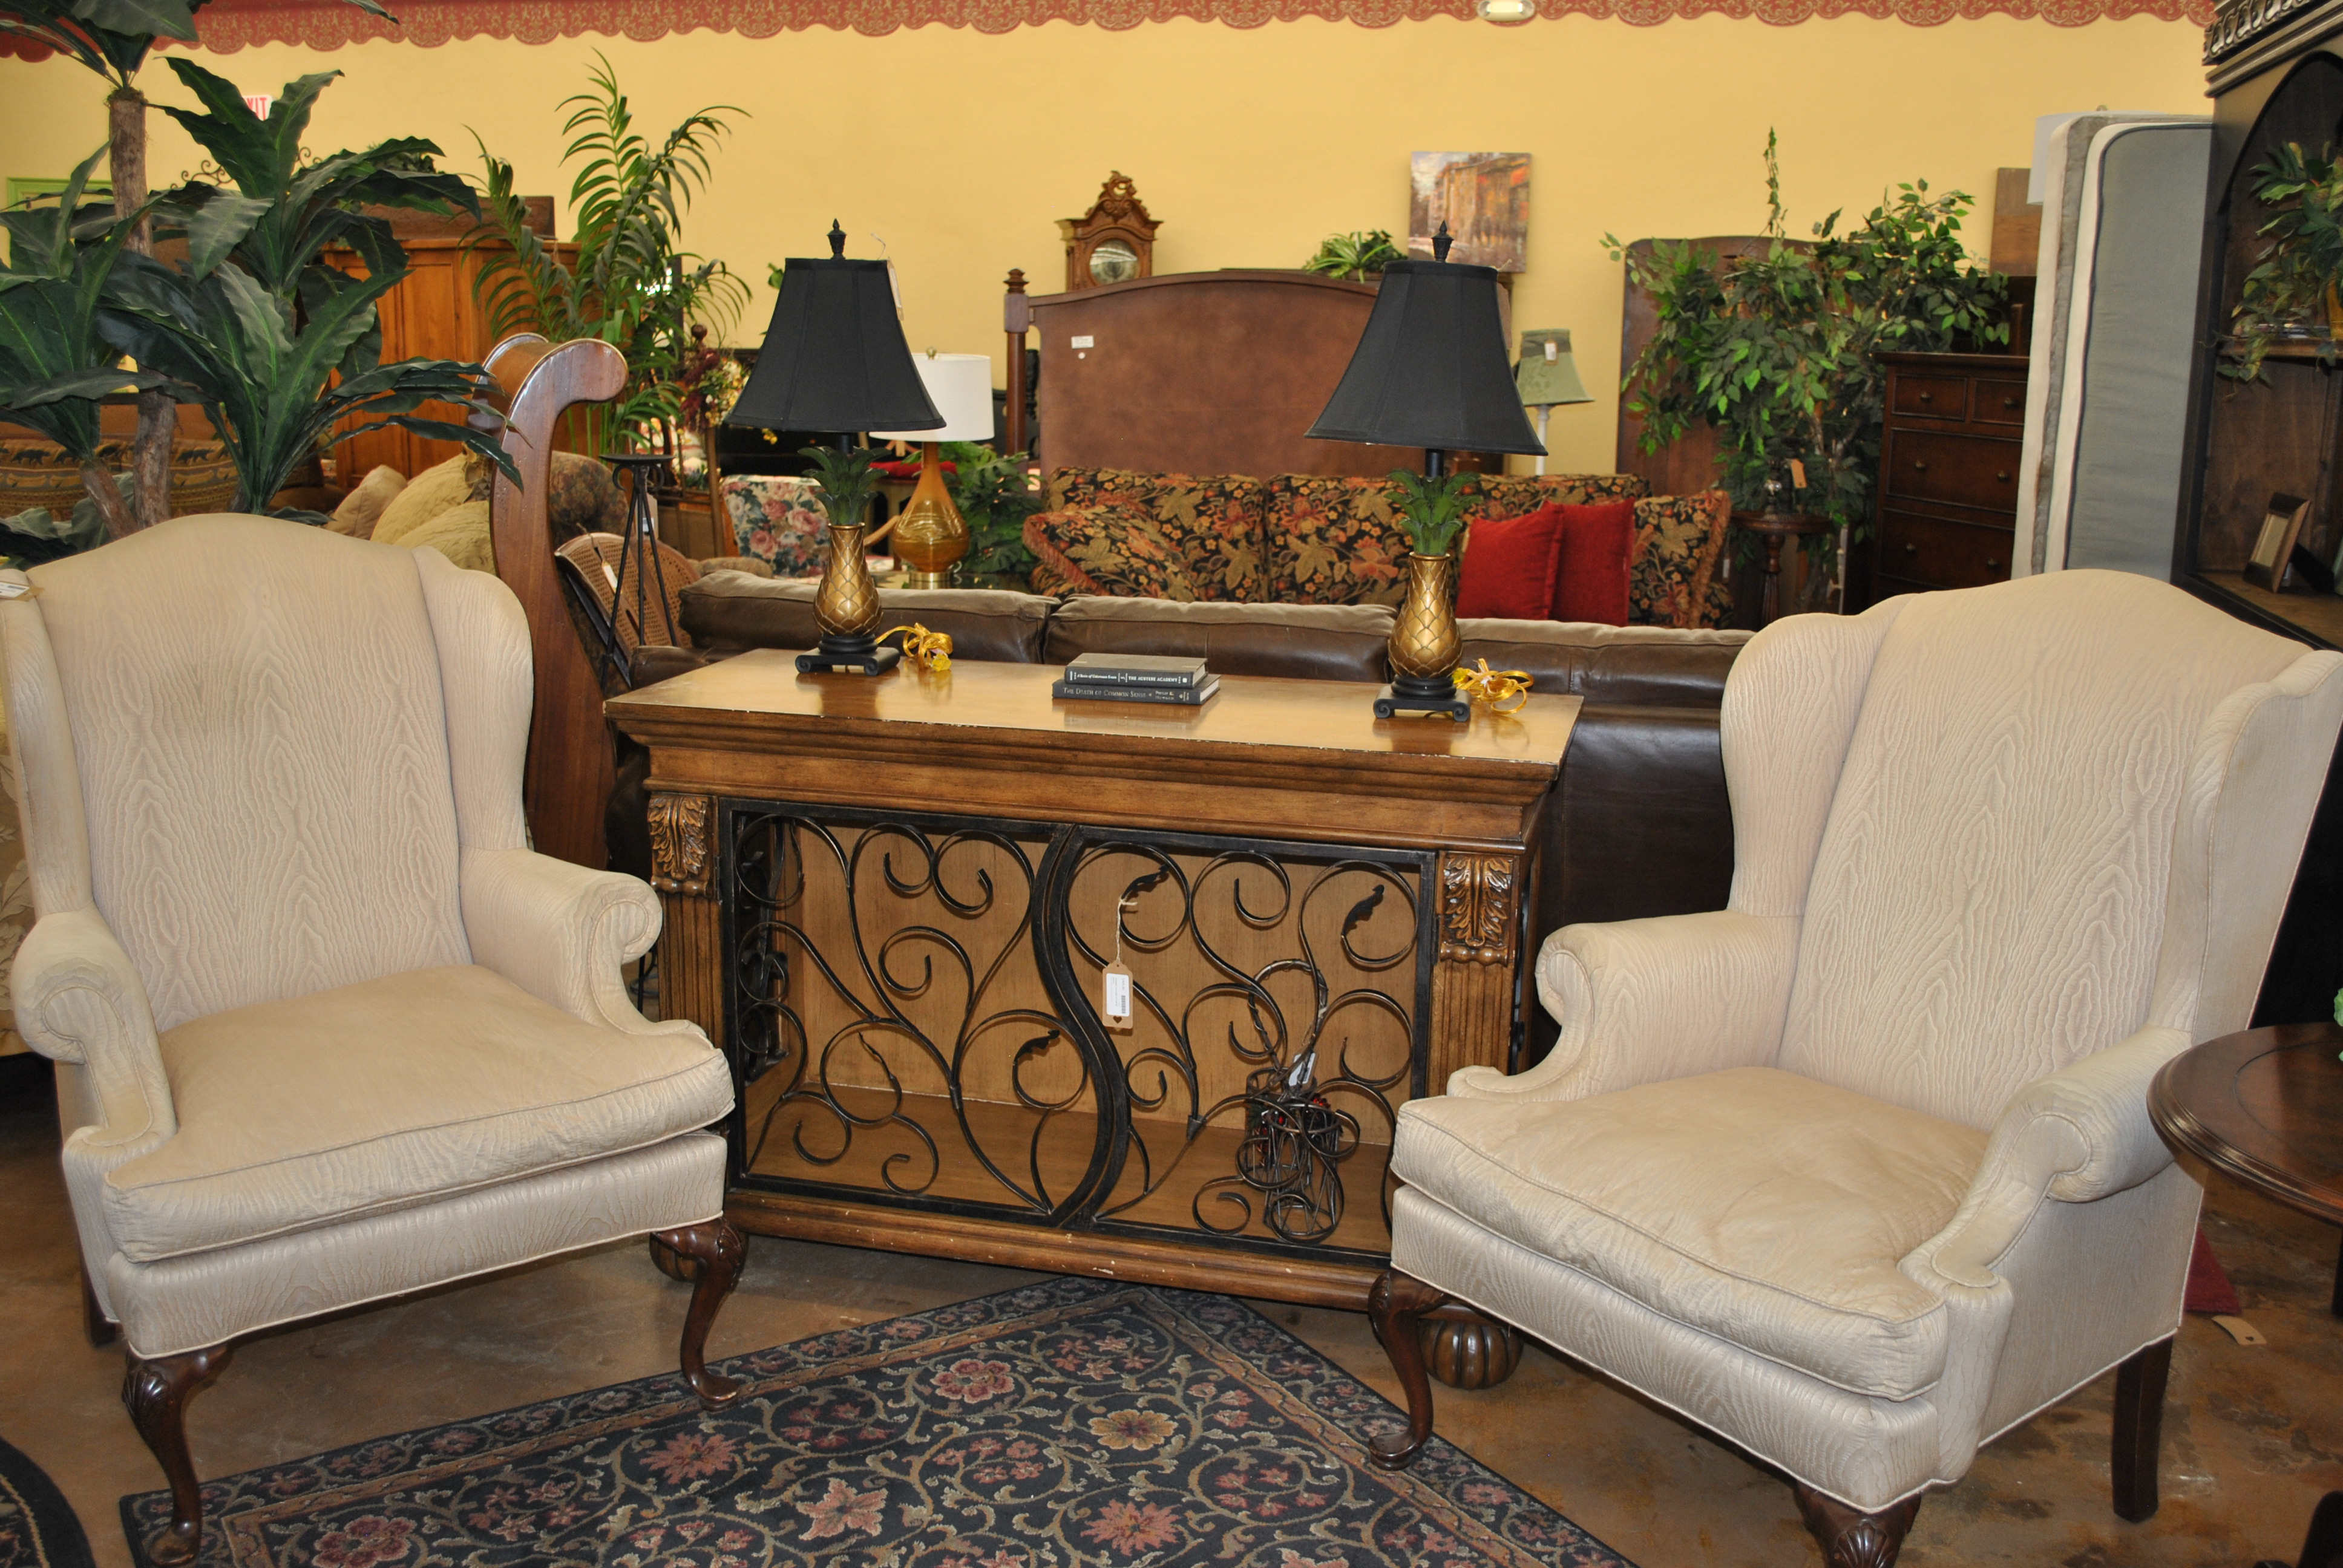 two plush beige chairs and light colored wooden cabinet